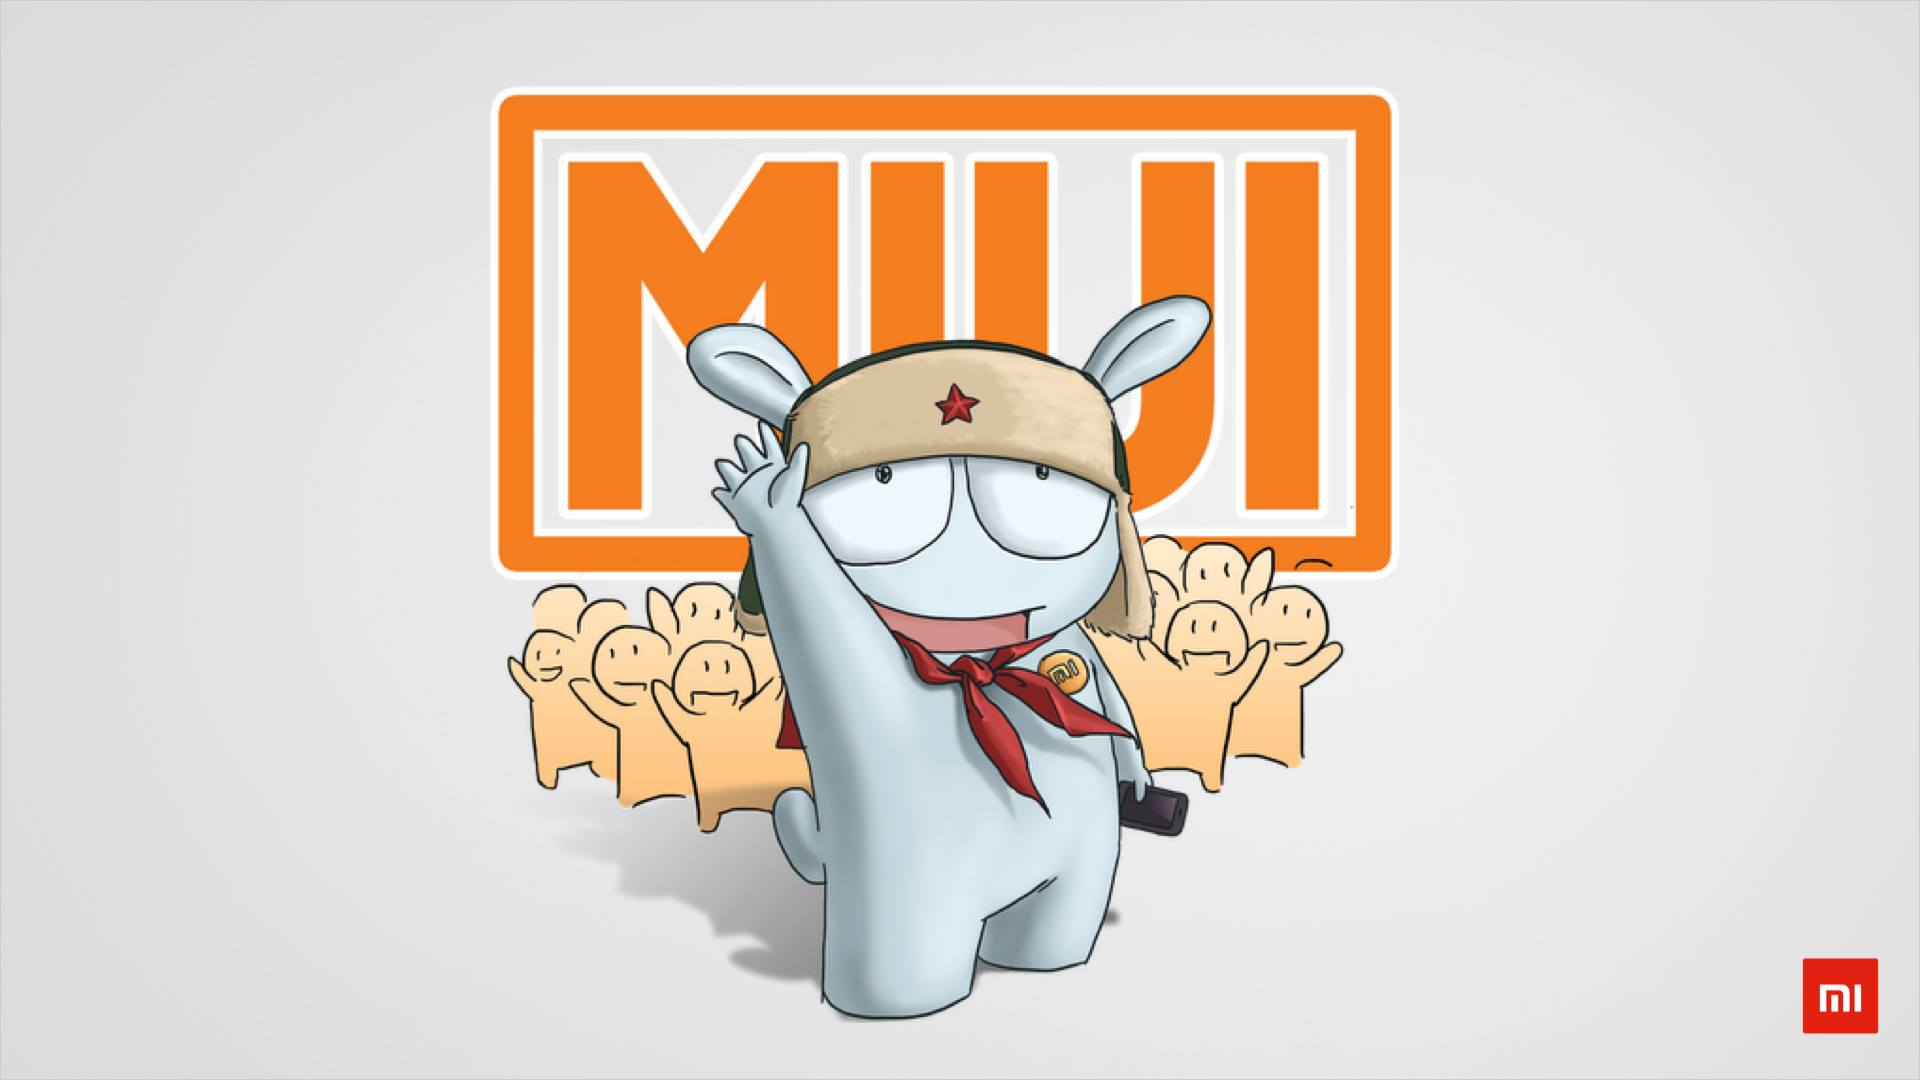 Xiaomi Wallpaper With Logo: Come Installare Una ROM MIUI Ufficiale Su Redmi Note 4 E